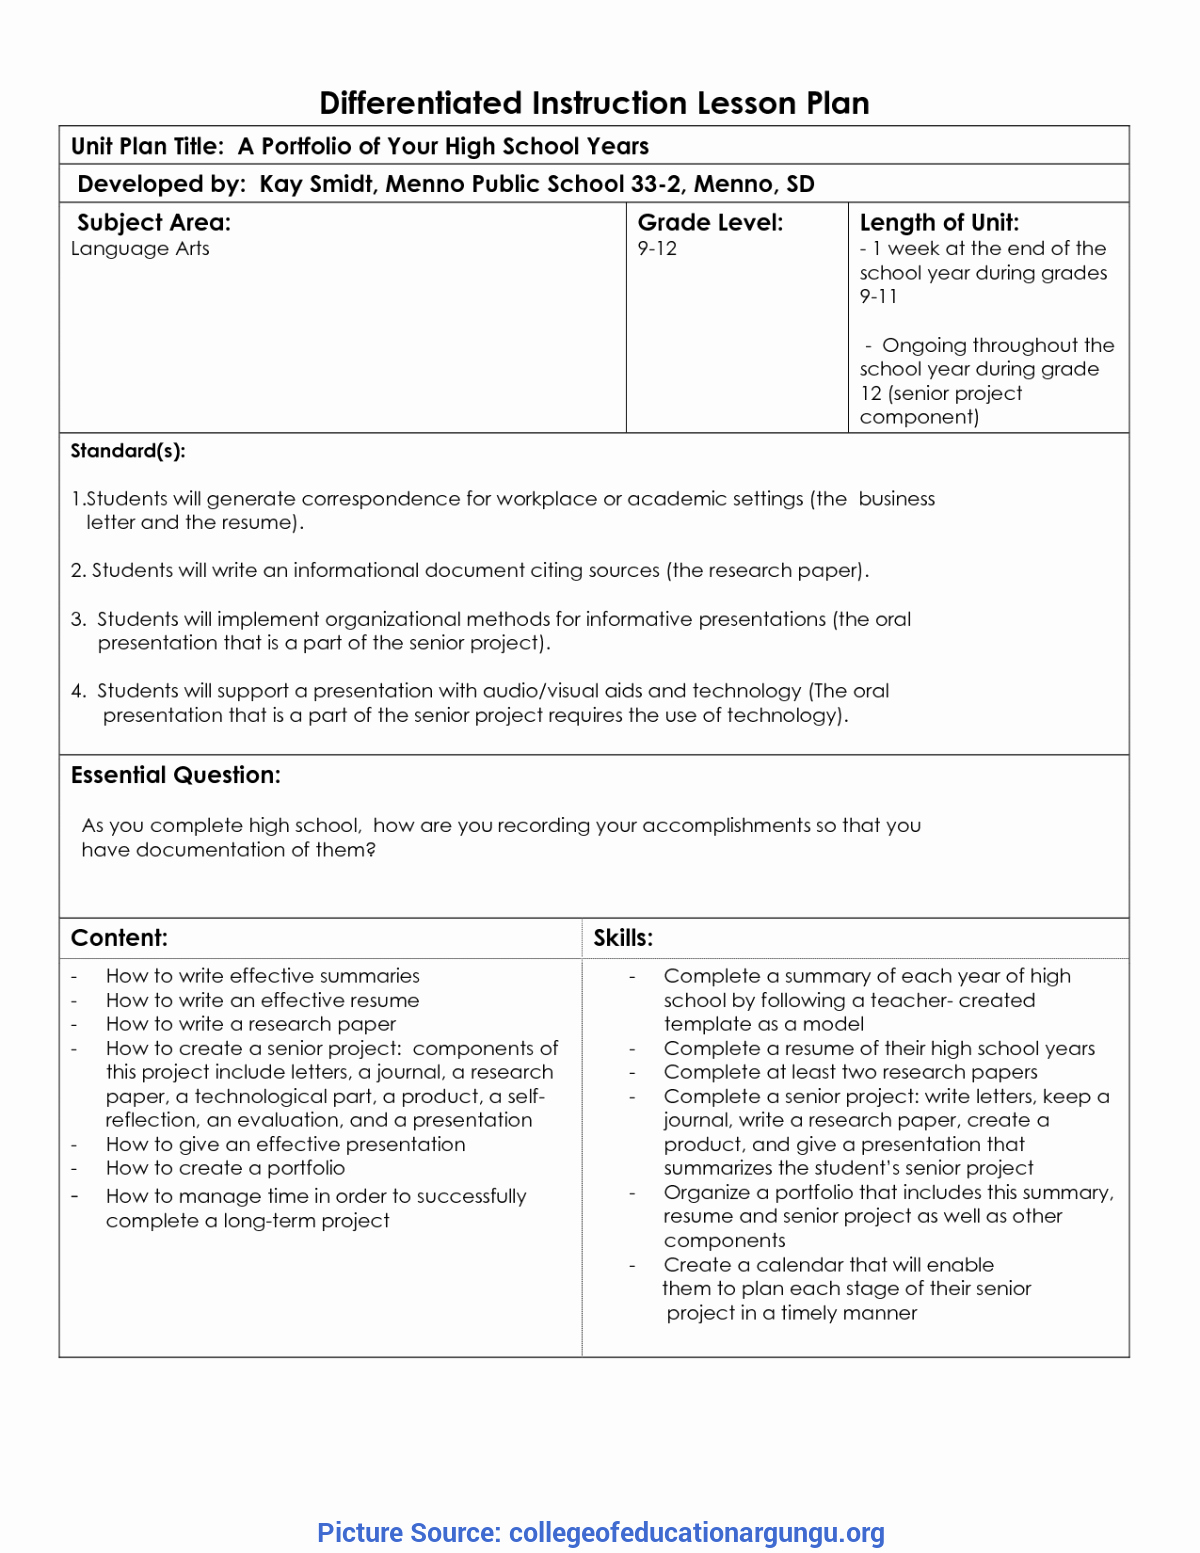 Differentiated Lesson Plan Template Luxury Excellent Differentiated Instruction Lesson Plans 39